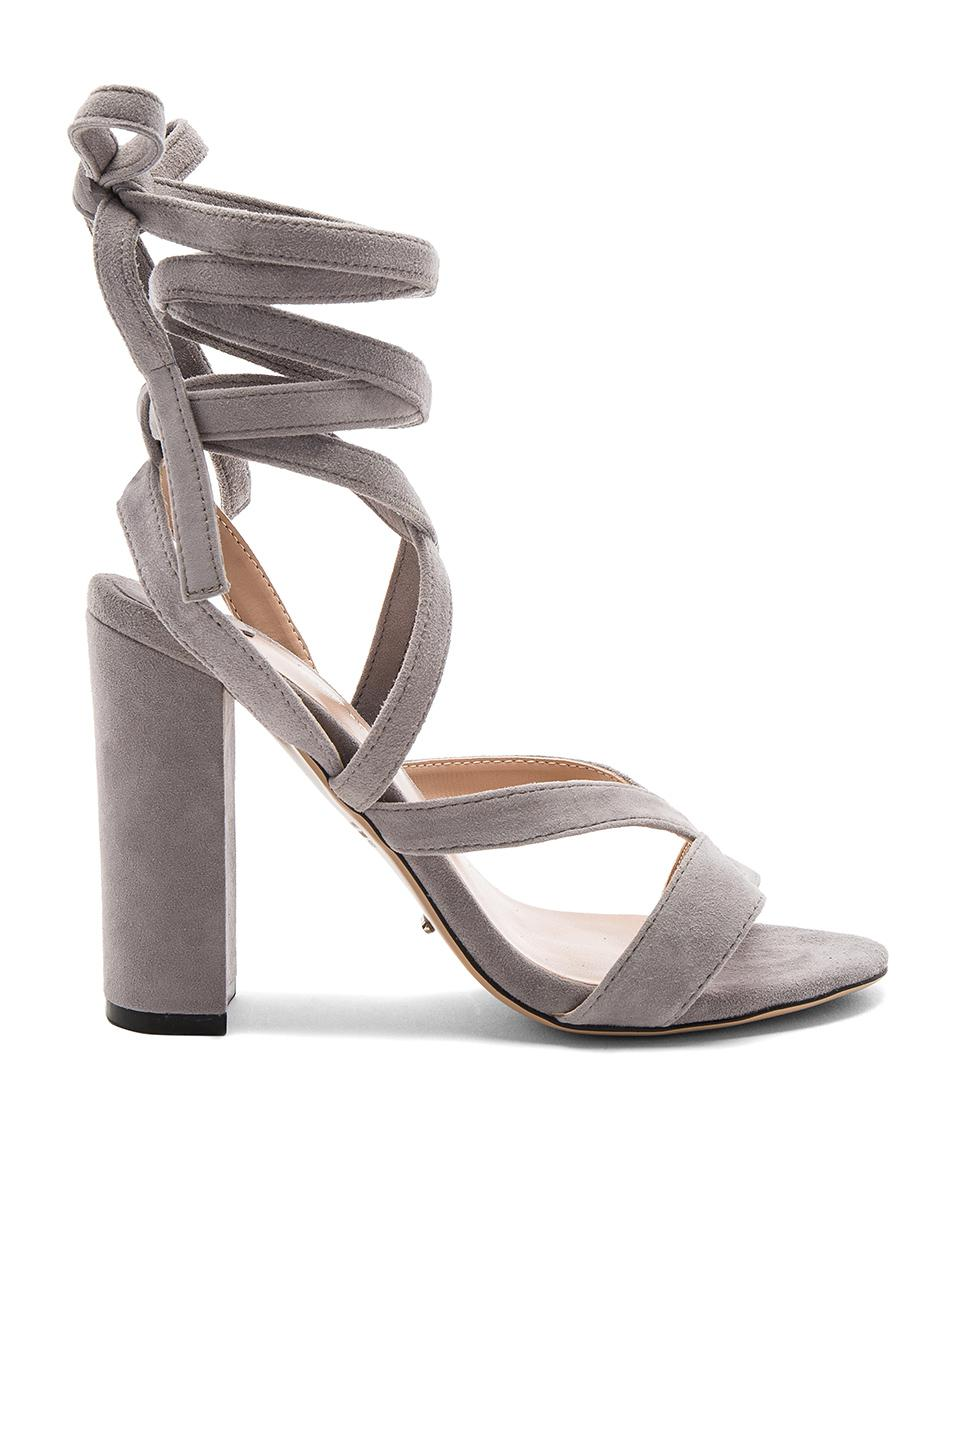 Tony Bianco Suede Kappa Sandals Lyst